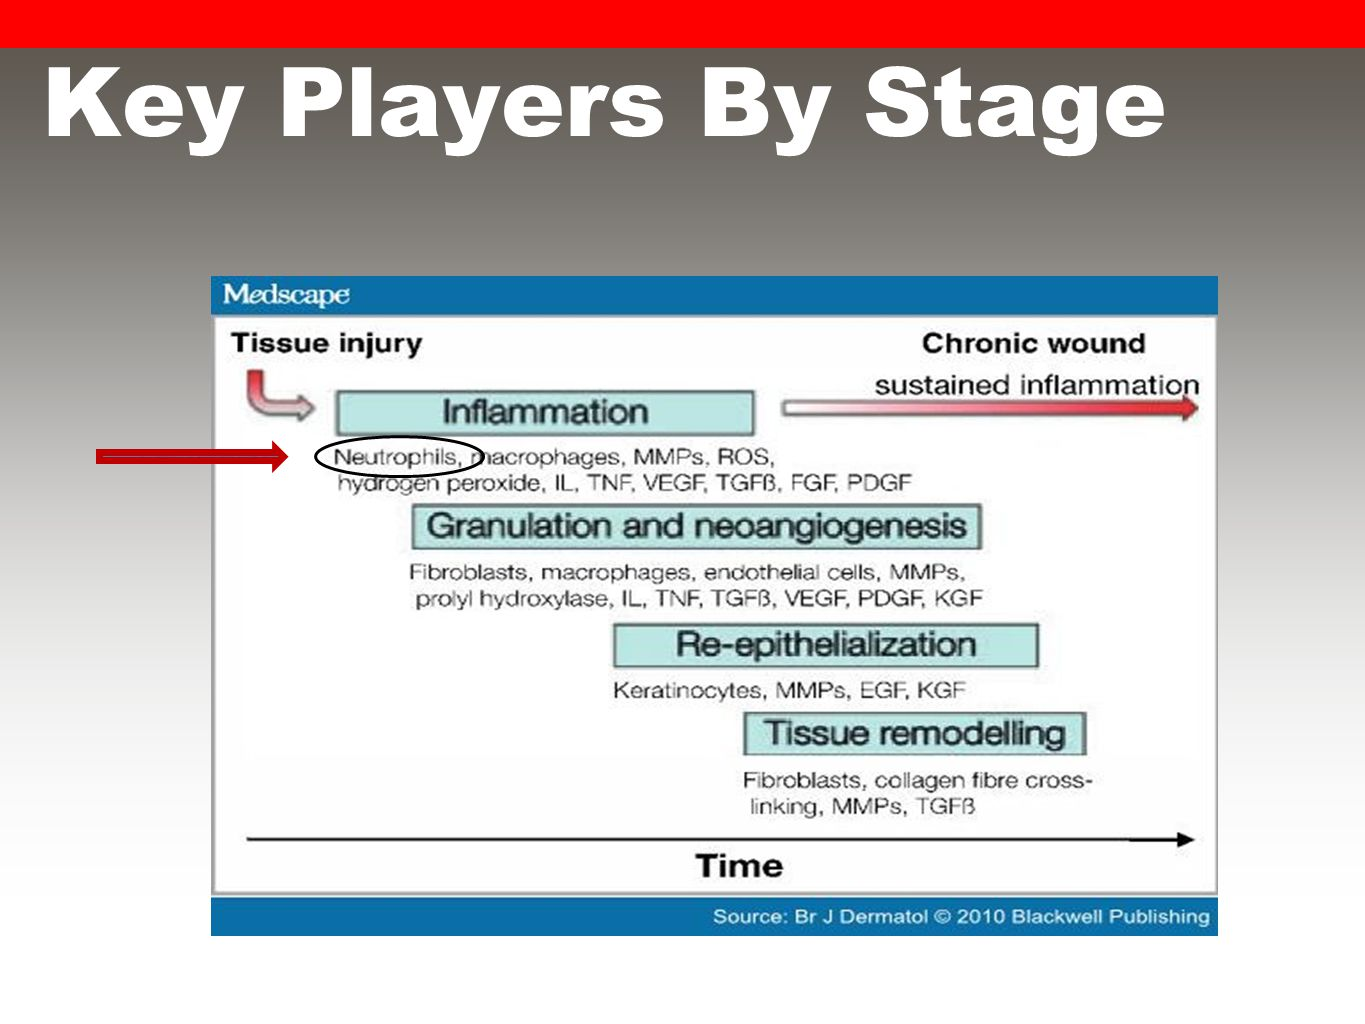 Key Players By Stage